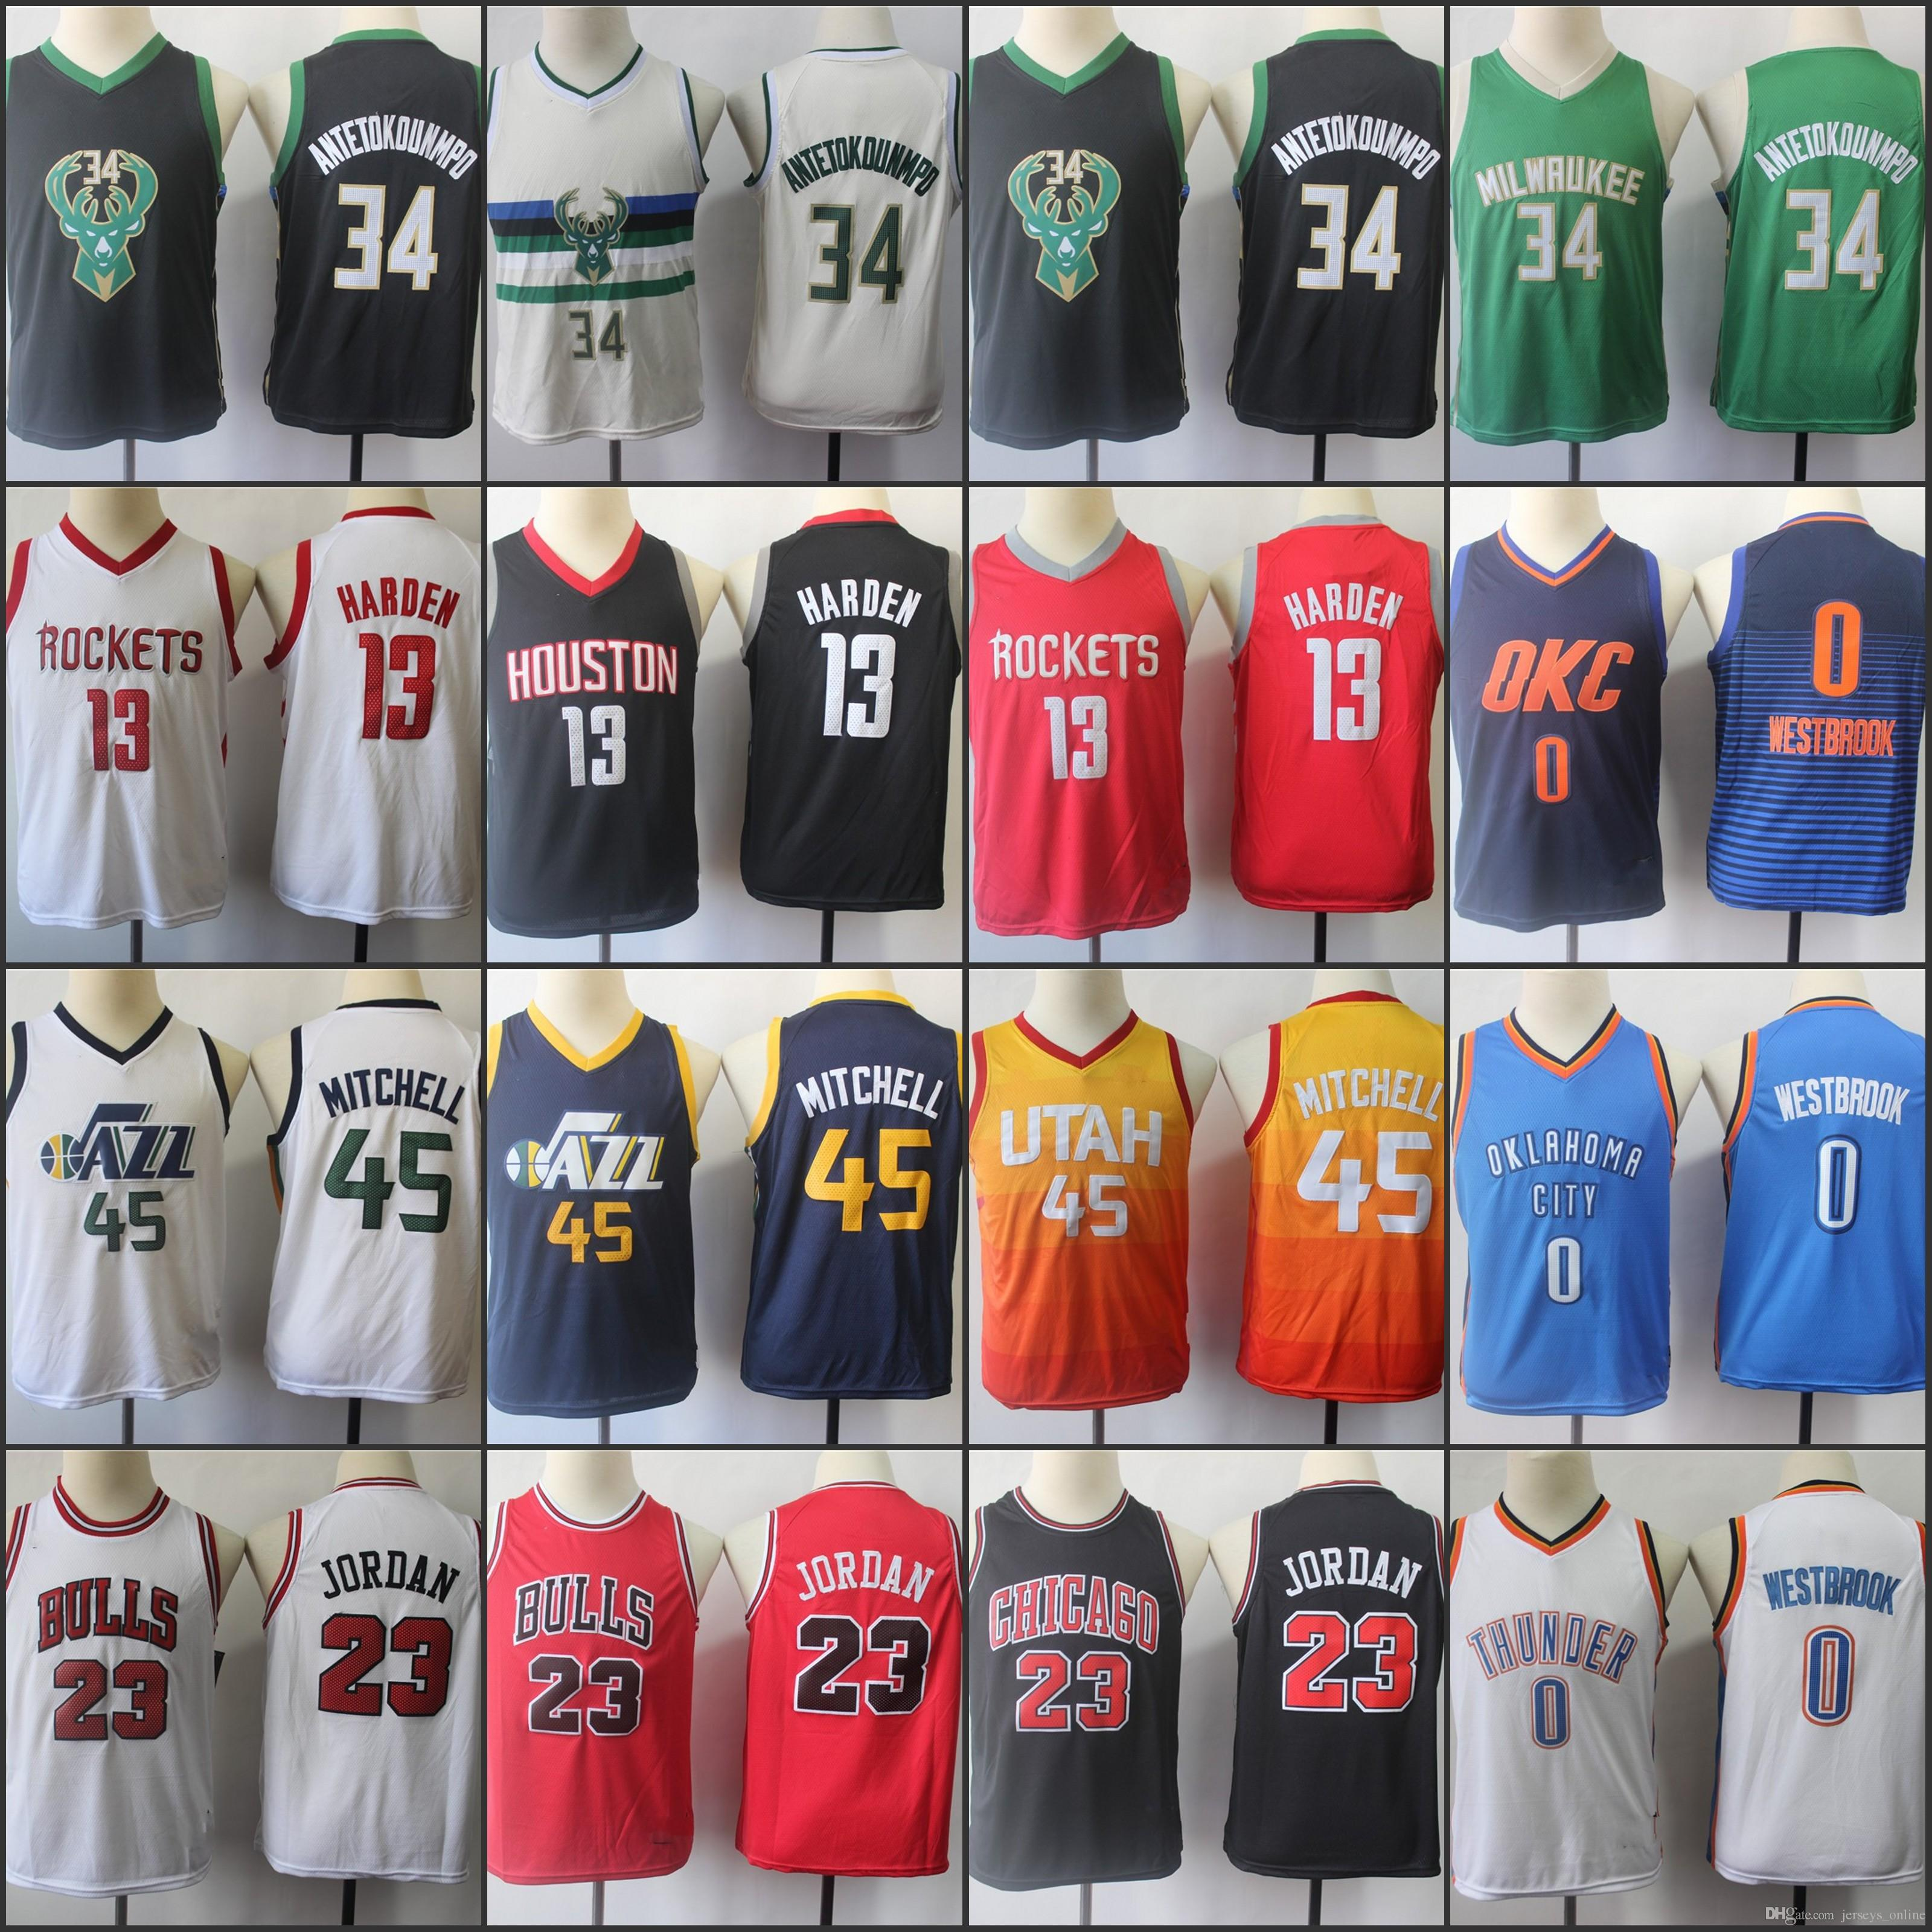 d90bb391eef0 2019 Youth Kids Donovan 45 Mitchell James 13 Harden 0 Westbrook Iannis 34  Antetokounmpo 23 Michael JD Jersey 01 From Jerseys online